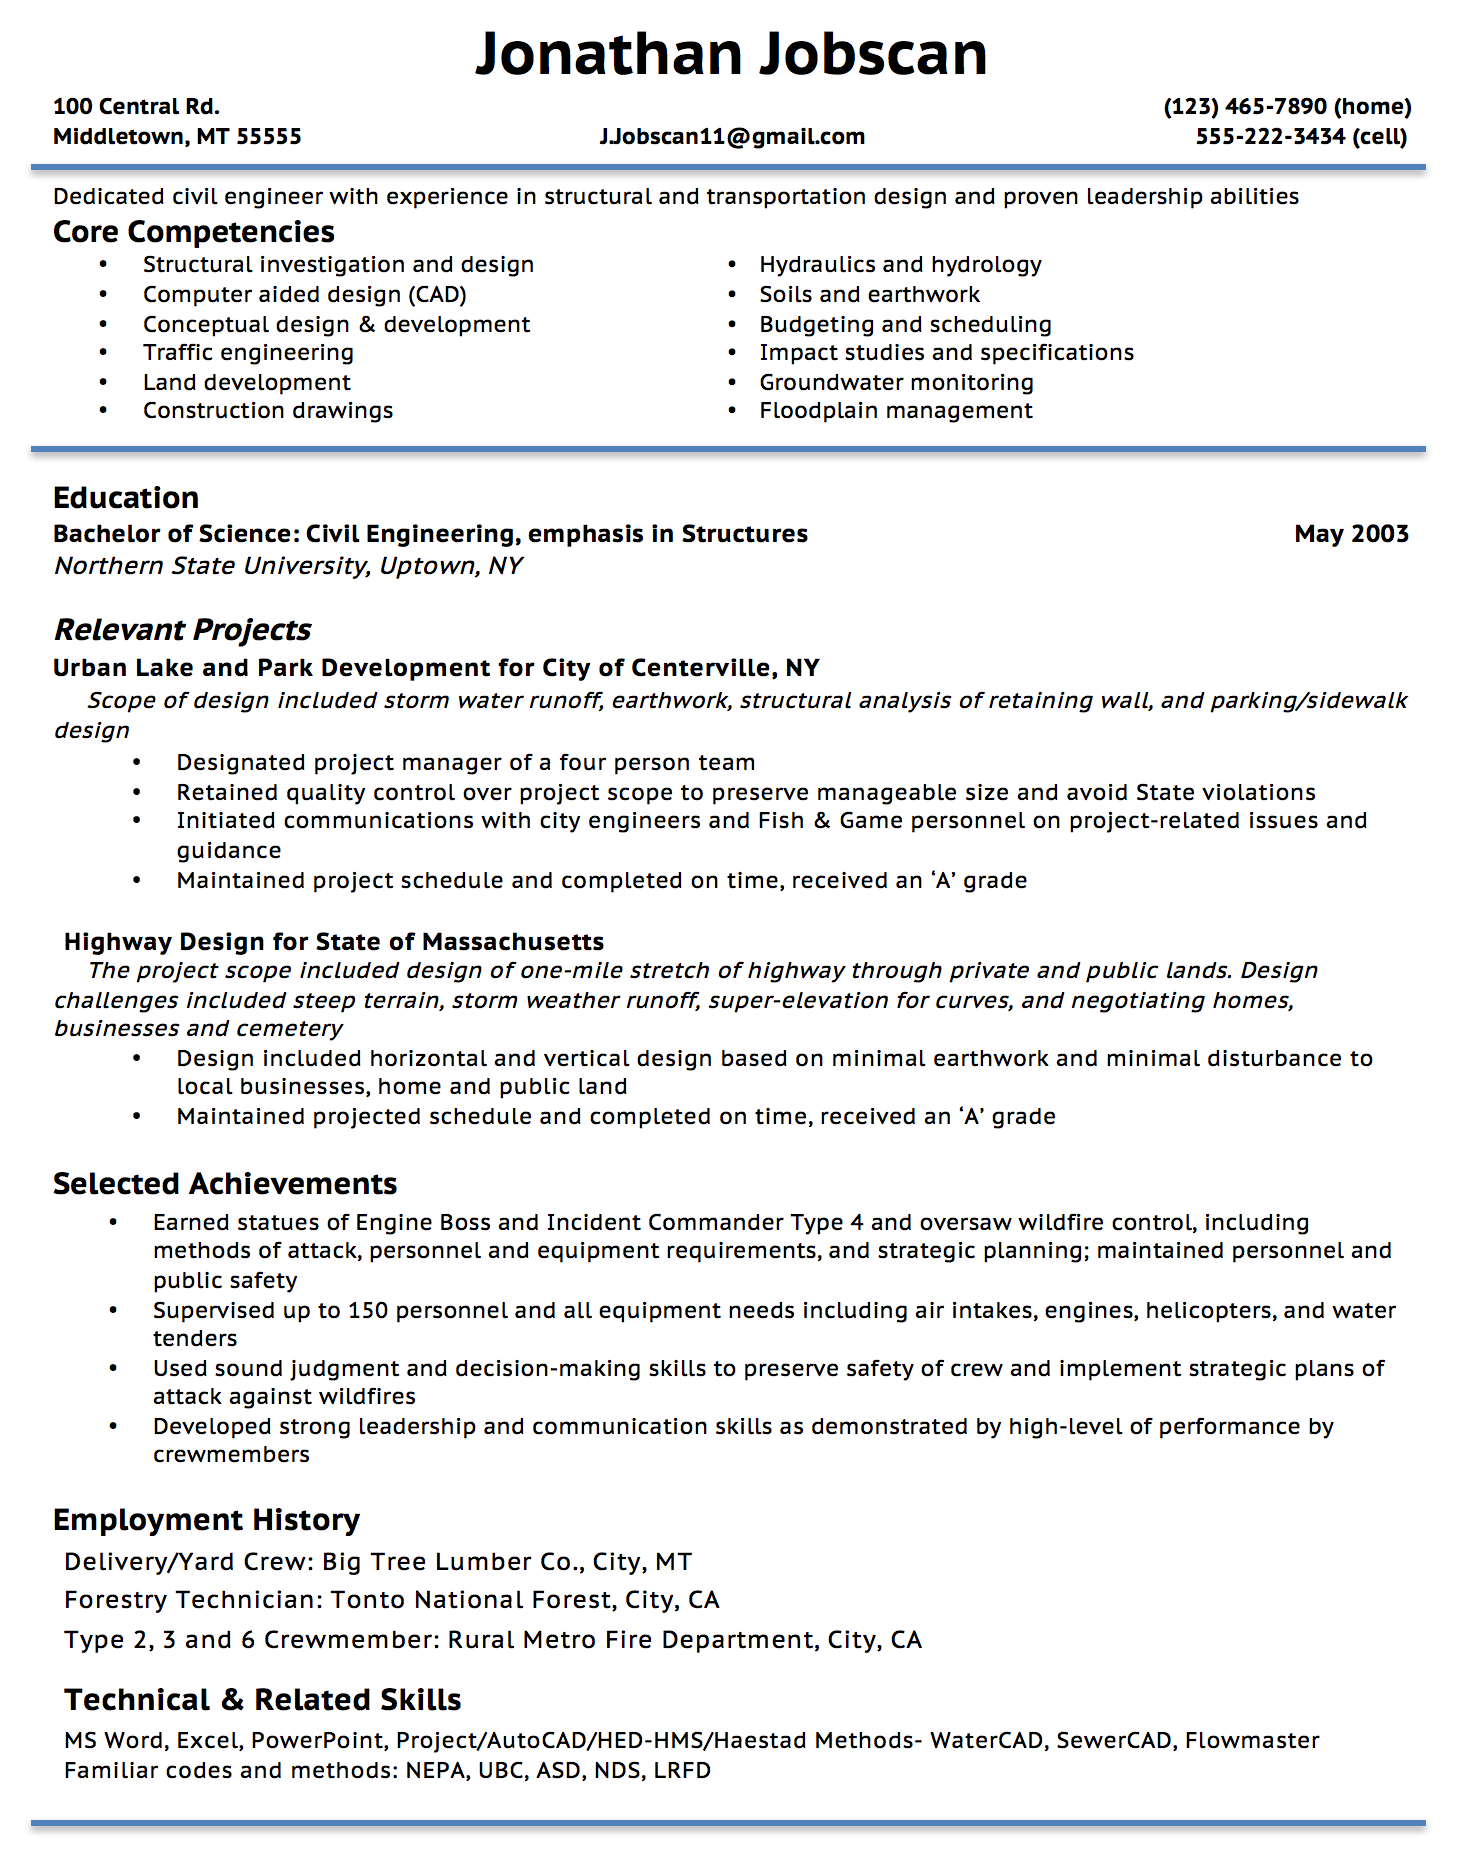 Opposenewapstandardsus  Marvelous Resume Writing Guide  Jobscan With Interesting Example Of A Functional Resume Format With Beautiful What Does A Job Resume Look Like Also Teacher Resumes Samples In Addition What Paper To Use For Resume And Resume For Operations Manager As Well As Mechanical Engineering Resumes Additionally Acting Resume Special Skills From Jobscanco With Opposenewapstandardsus  Interesting Resume Writing Guide  Jobscan With Beautiful Example Of A Functional Resume Format And Marvelous What Does A Job Resume Look Like Also Teacher Resumes Samples In Addition What Paper To Use For Resume From Jobscanco